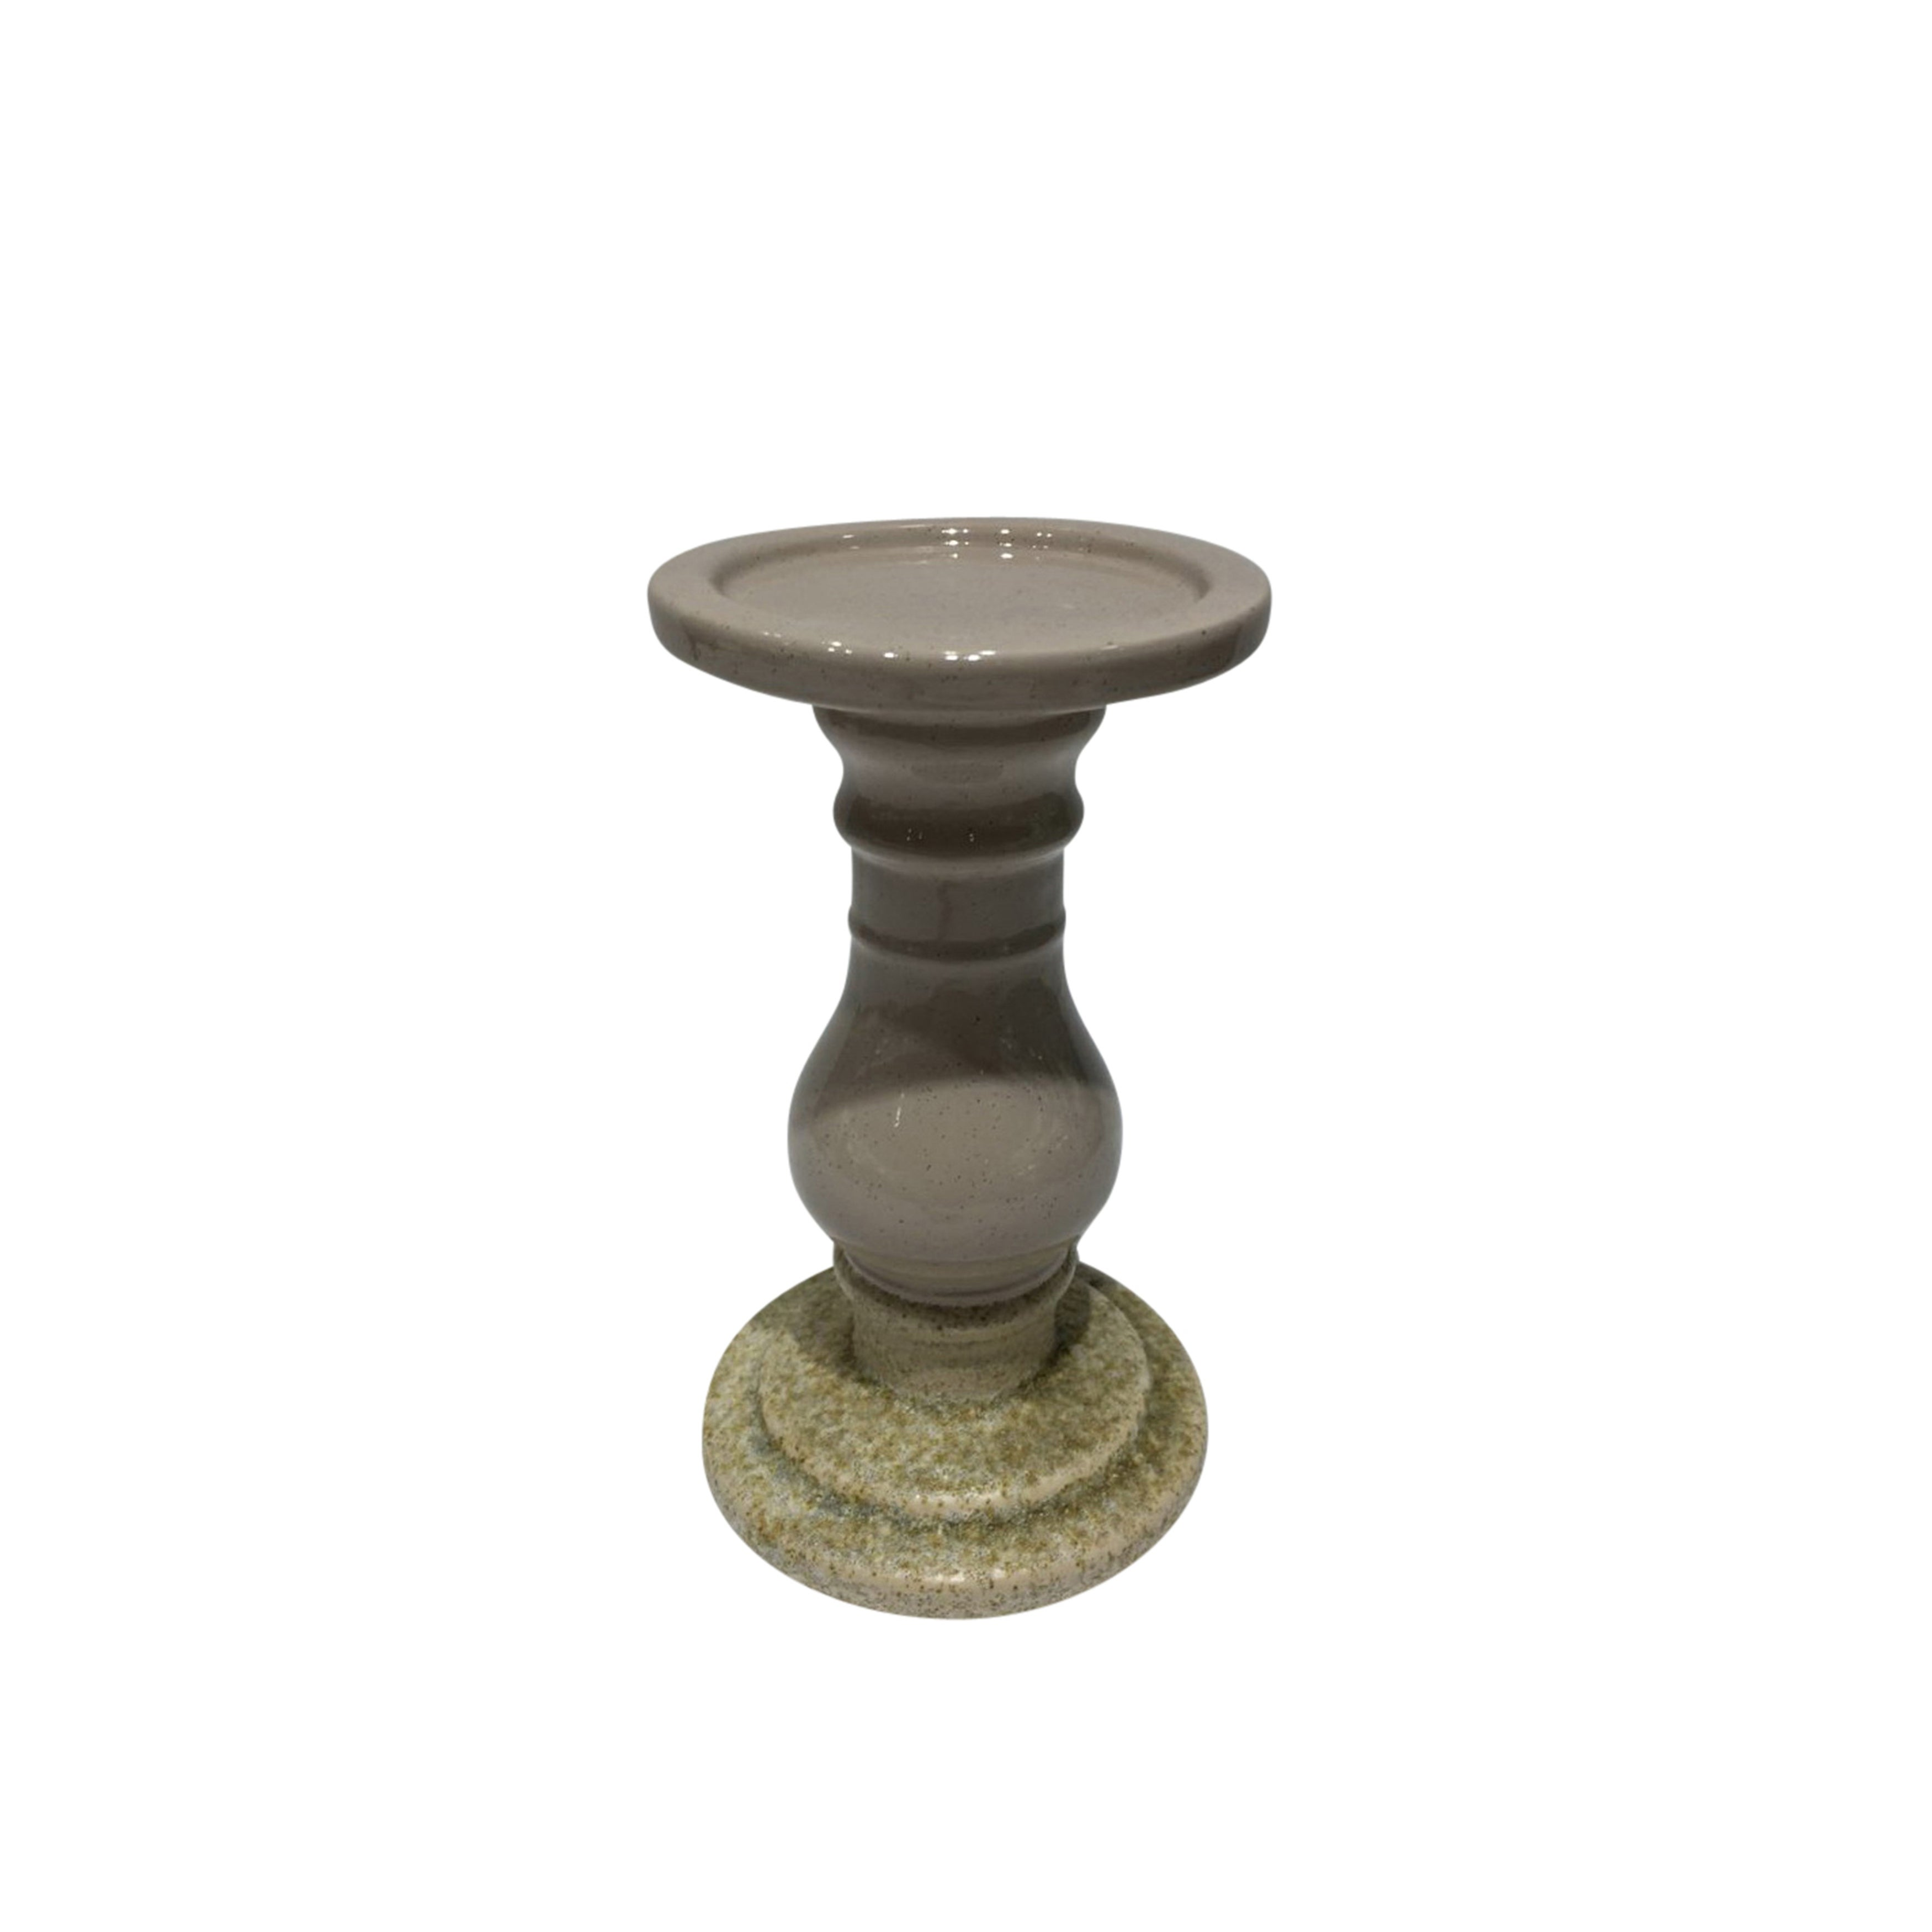 Decorative Ceramic Candle Holder in Pedestal Shape, Small, Beige